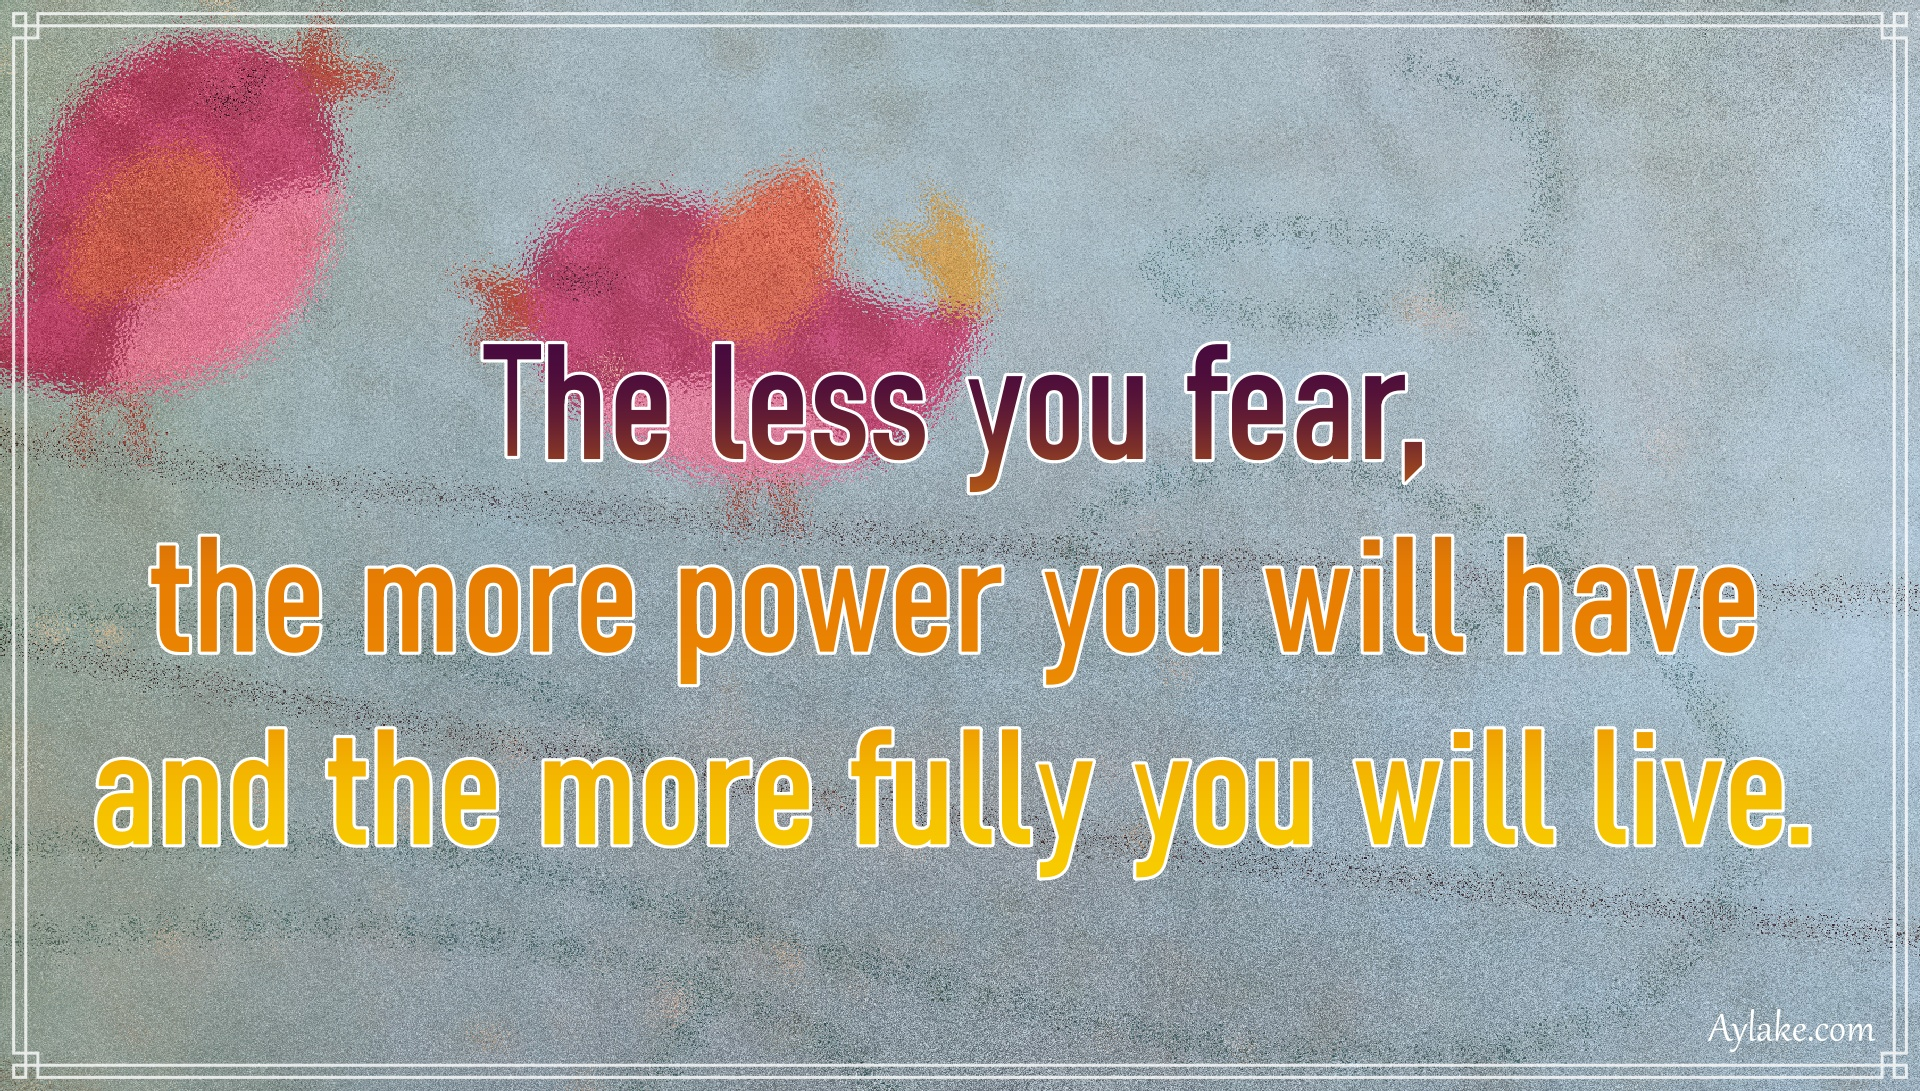 Powerful quotes The less yo fear the more power you will have Aylake